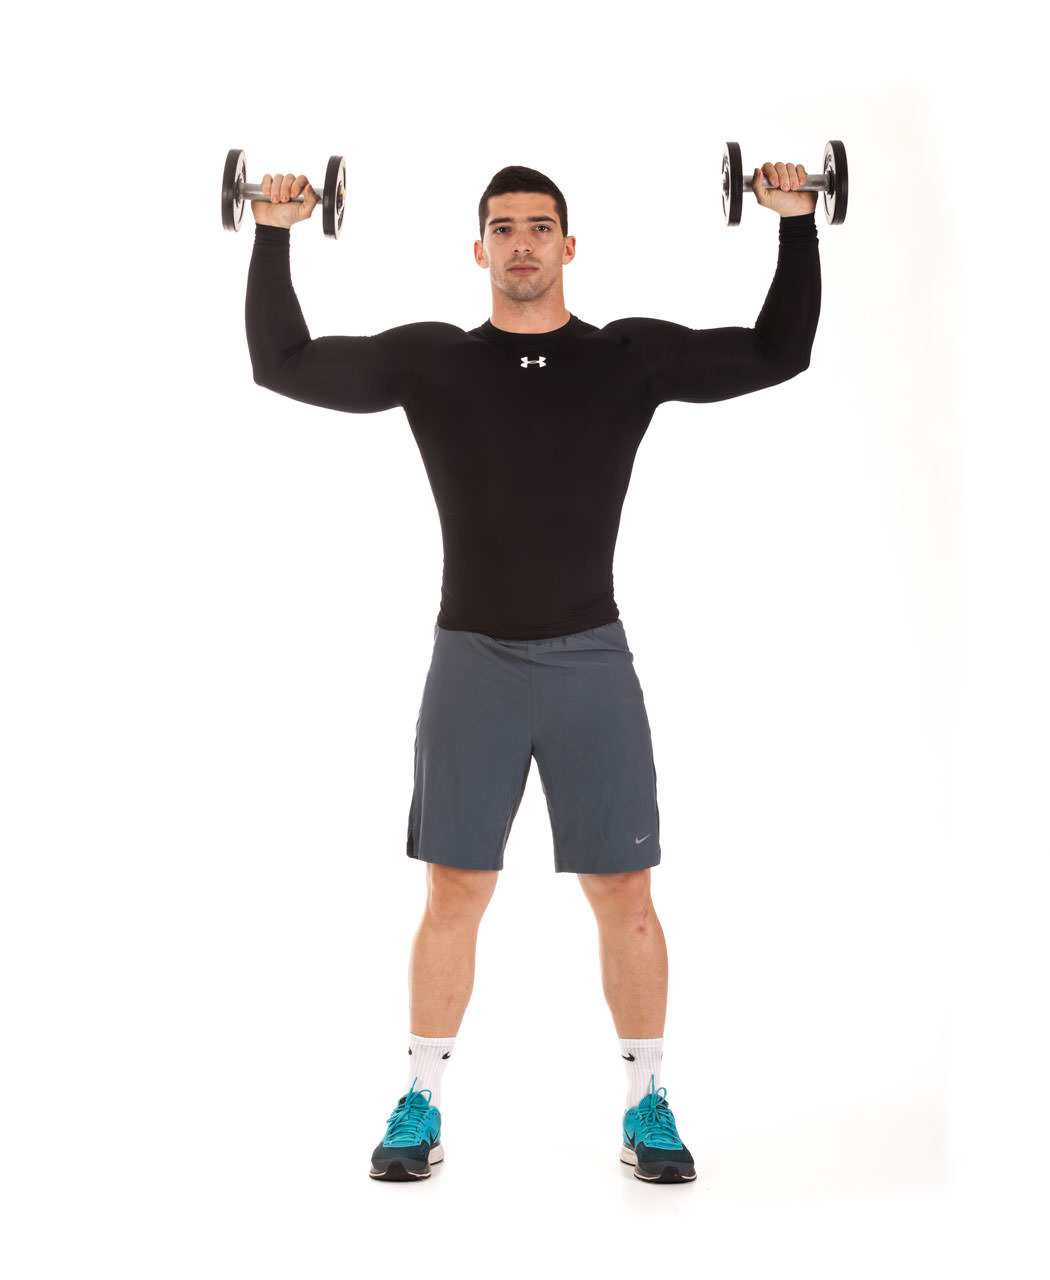 Dumbbell External Rotation frame #1